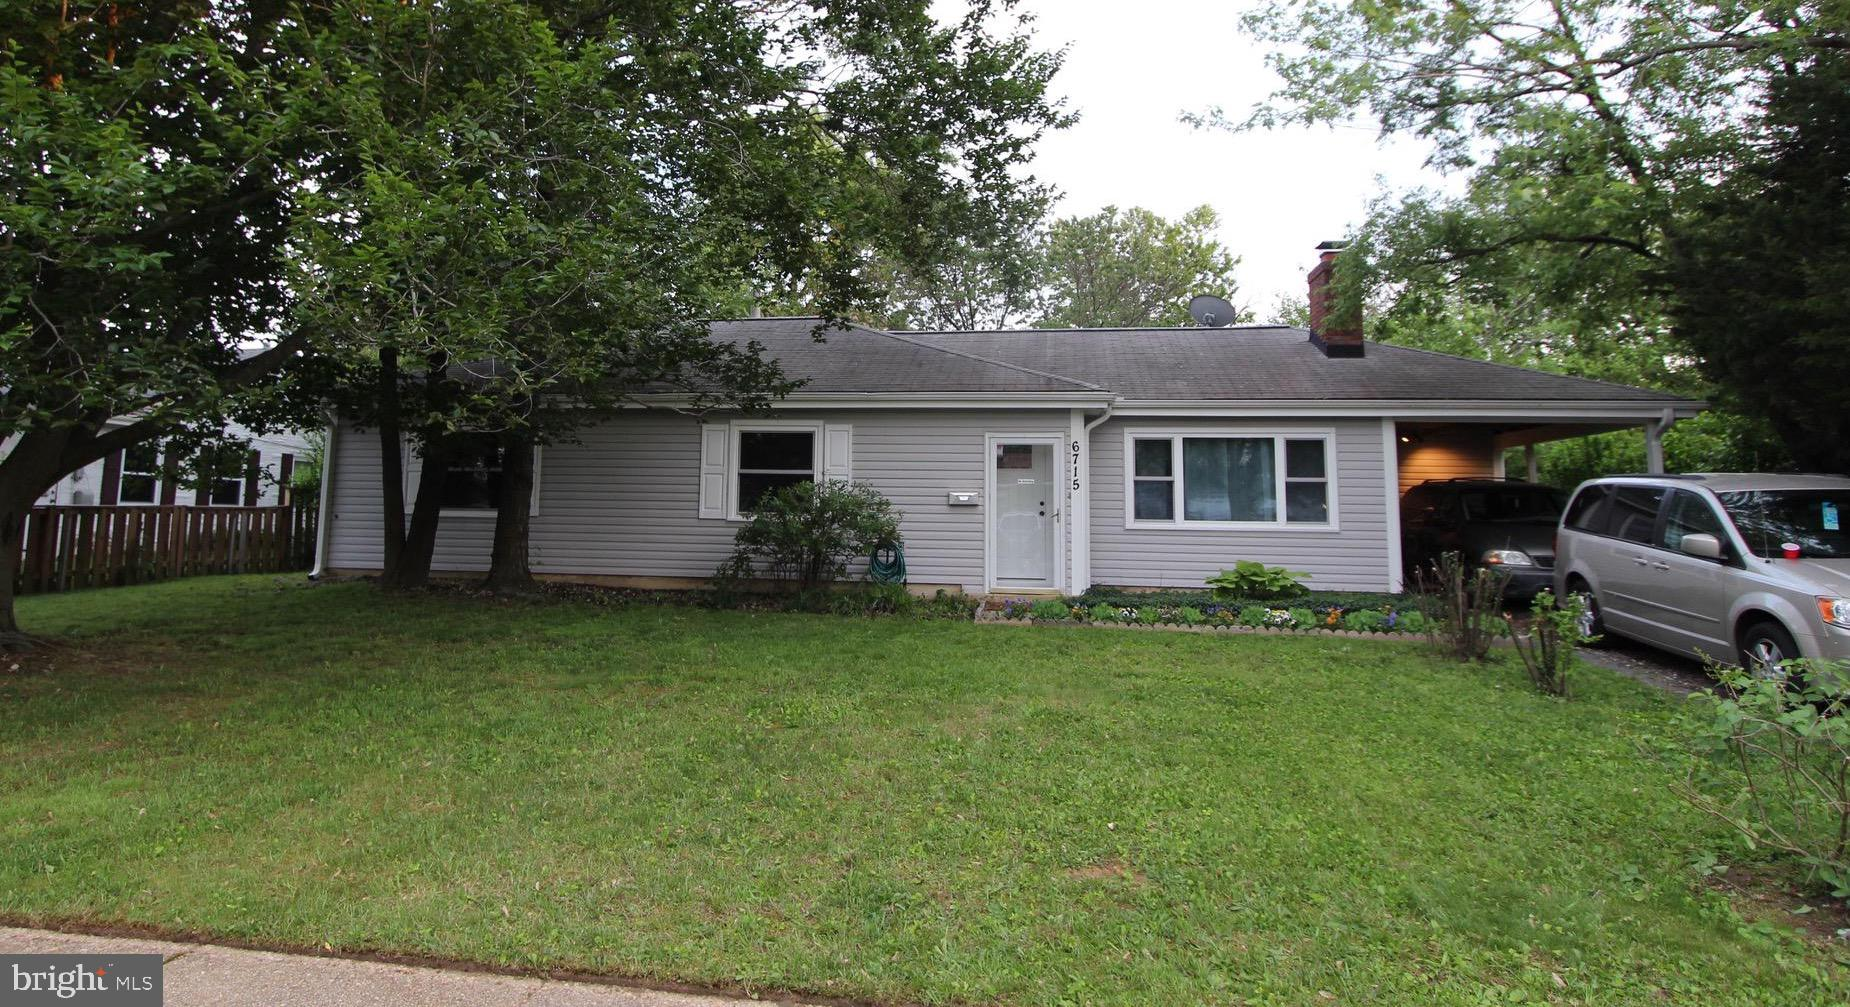 Location, Location, Location! This 4 bedroom 2 bath home is located in the heart of Springfield in close proximity to the Mixing Bowl (the hub of major roadways and interstate highways). From here you can get anywhere rather quickly. Close to shopping, restaurants, the newly rebuilt Springfield Town Center,doctors, hospitals, metro, you name it, it's here! Its great for entertaining, the back yard is a private oasis with a fire pit and no visibility of the neighbors. Major systems are relatively new and should provide many years of trouble free living. The windows, siding and gutters were replaced  8 years ago. The roof was inspected last spring.  The rear porch is carpeted for comfort and there is room for patio furniture. The roof to the porch was replaced last spring. The porch has an attached shed/workroom.  Inside there is an eat in kitchen, a new side by side stainless steel refrigerator, about 5 months old. The kitchen is retro with freshly painted and lined metal cabinets, and crown molding. The black and stainless steel stove was installed in 2016,  the new washer and dryer in May 2018. New A/C and furnace installed August 2017.  The entire home is freshly painted including the insides of all the closets and all interior doors were replaced 3 months ago with 6 panel doors. The bathrooms have been tastefully remodeled. Whether it's your first home or you are downsizing to a home without stairs, this home is a rare opportunity in this highly sought after area! Hurry, won't last!